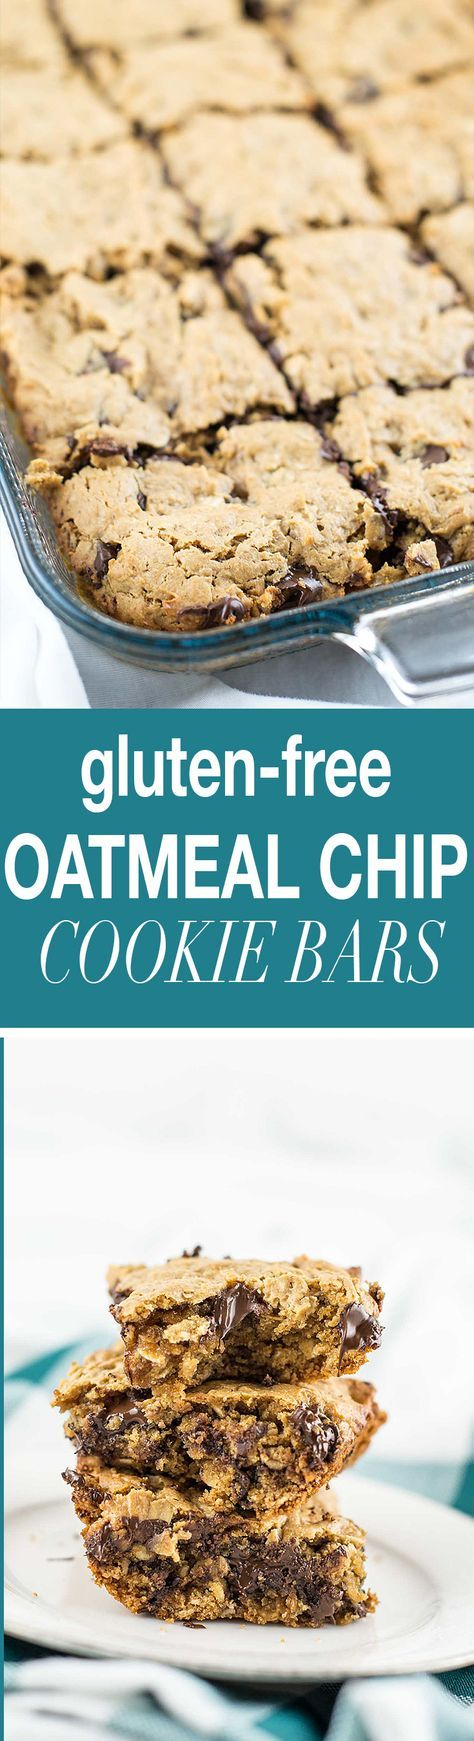 A healthy recipe for gluten-free oatmeal chocolate chip bars made using coconut flour, oat flour, and rolled oats. A delicious snack or dessert!